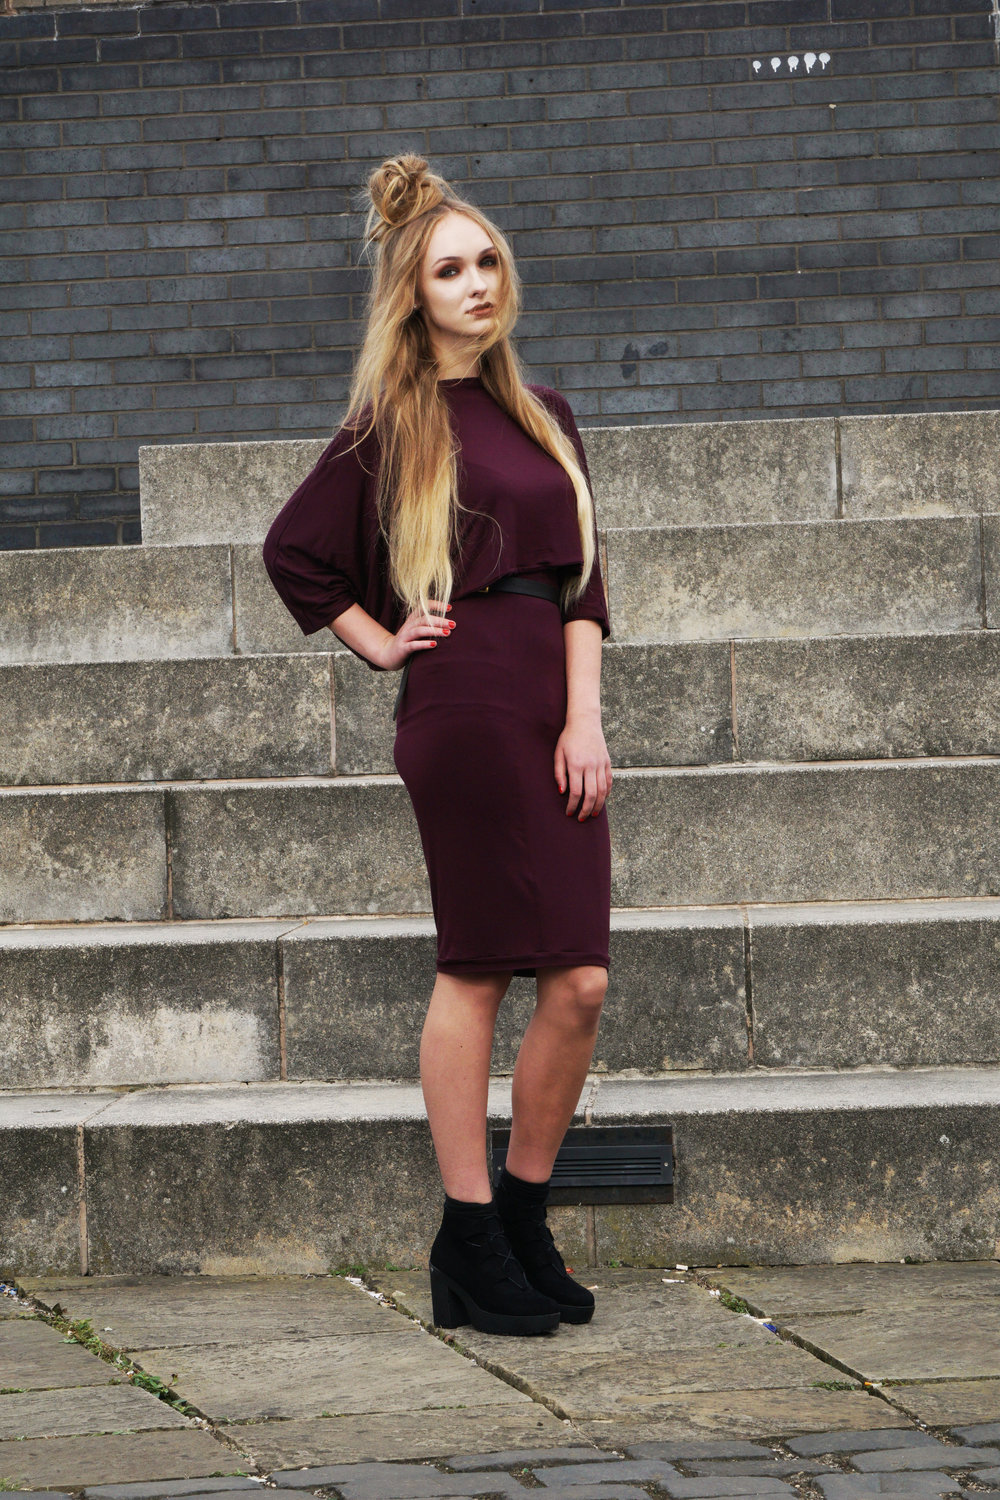 zaramia-ava-zaramiaava-leeds-fashion-designer-ethical-sustainable-plum-drape-mika-crop-top-yoko-skirt-leeds-dock-grunge-2